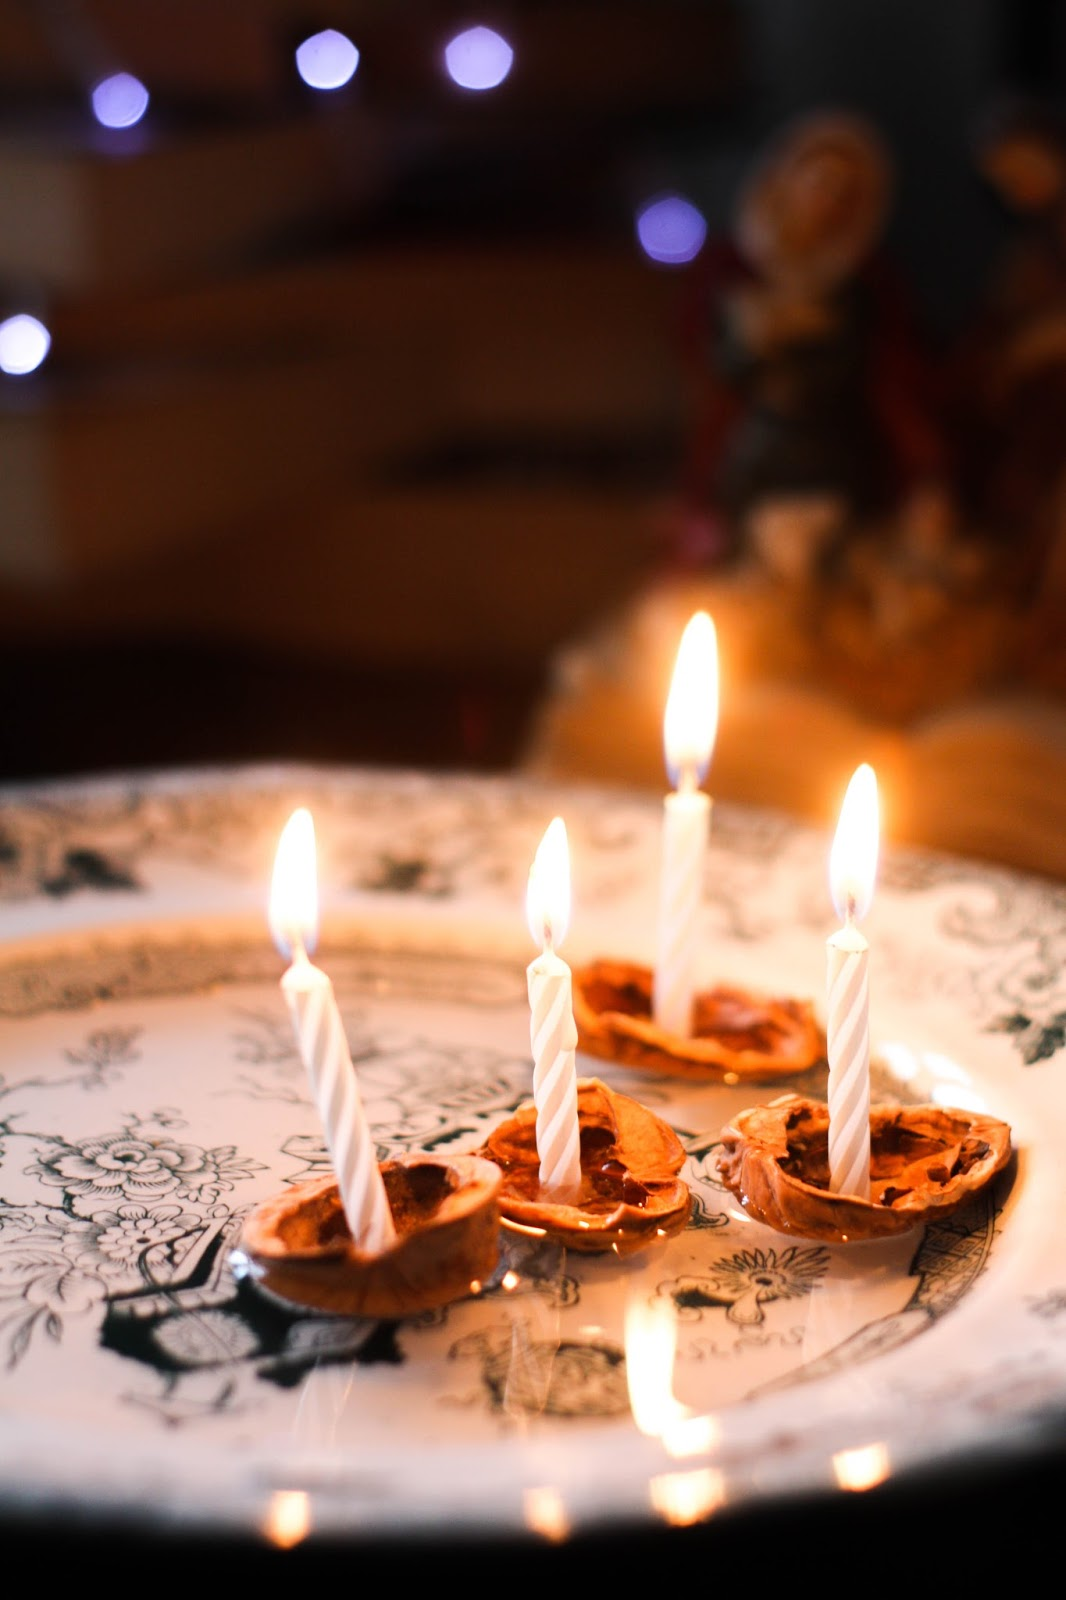 10 Czech Christmas traditions that surely aren't real (but they totally are!)